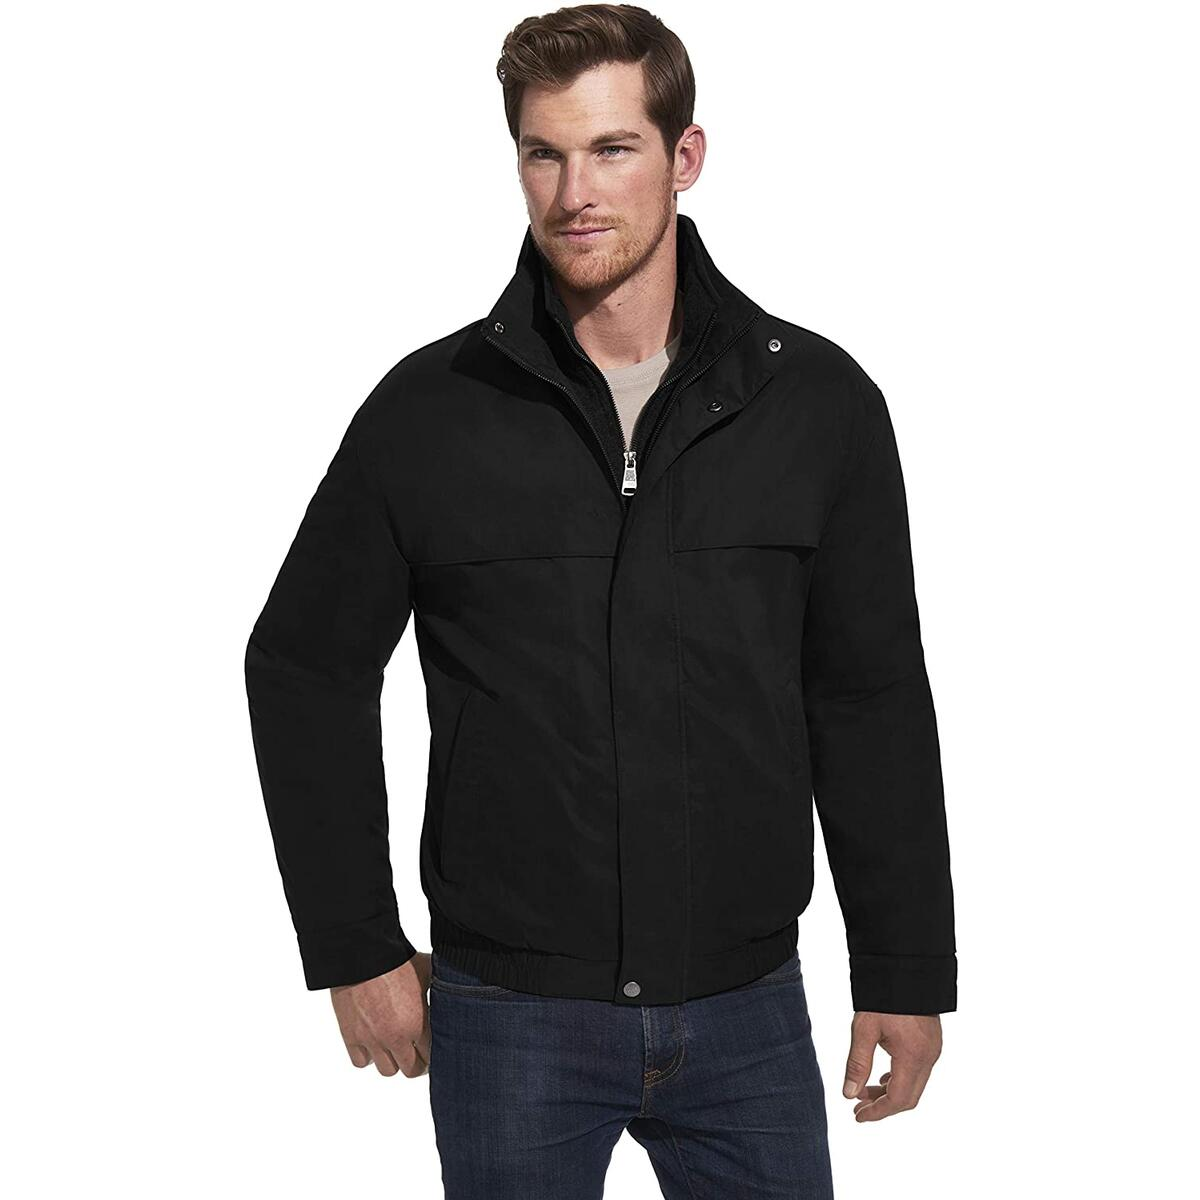 Weatherproof Mens Lightweight Micro-Suede Water Resistant Zip Bomber Jacket Coat